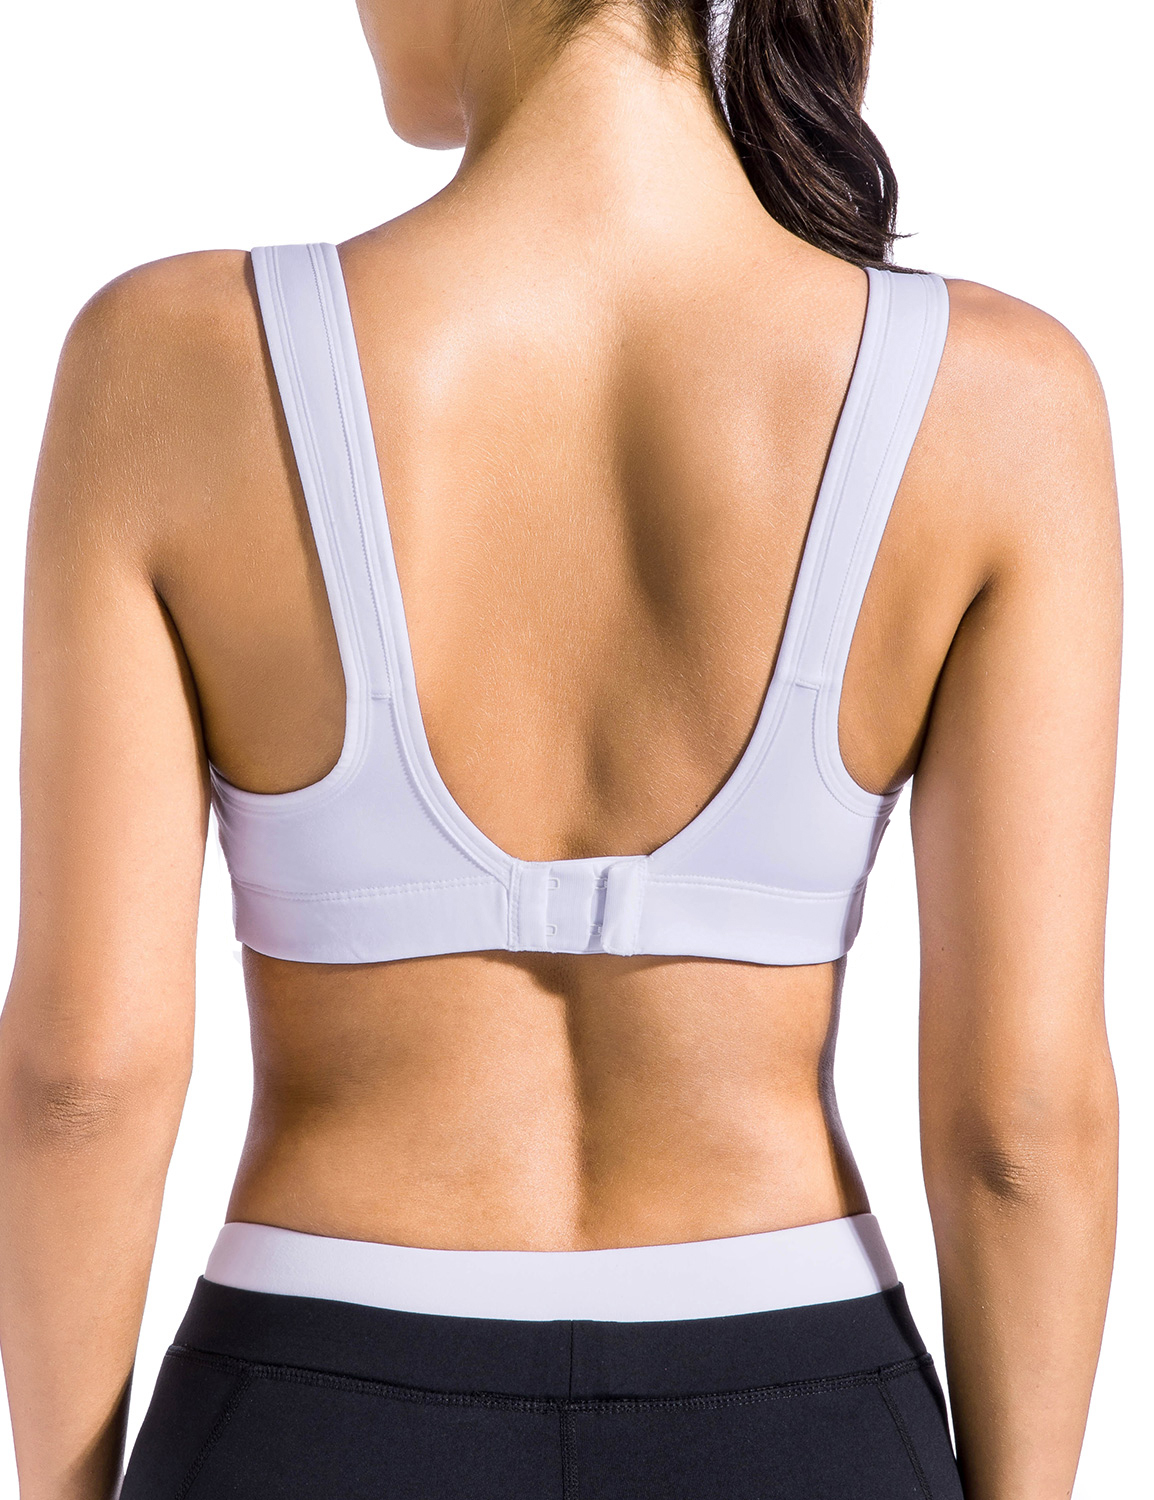 Women-039-s-Bounce-Control-Wire-Free-High-Impact-Max-Support-Sports-Bra thumbnail 12